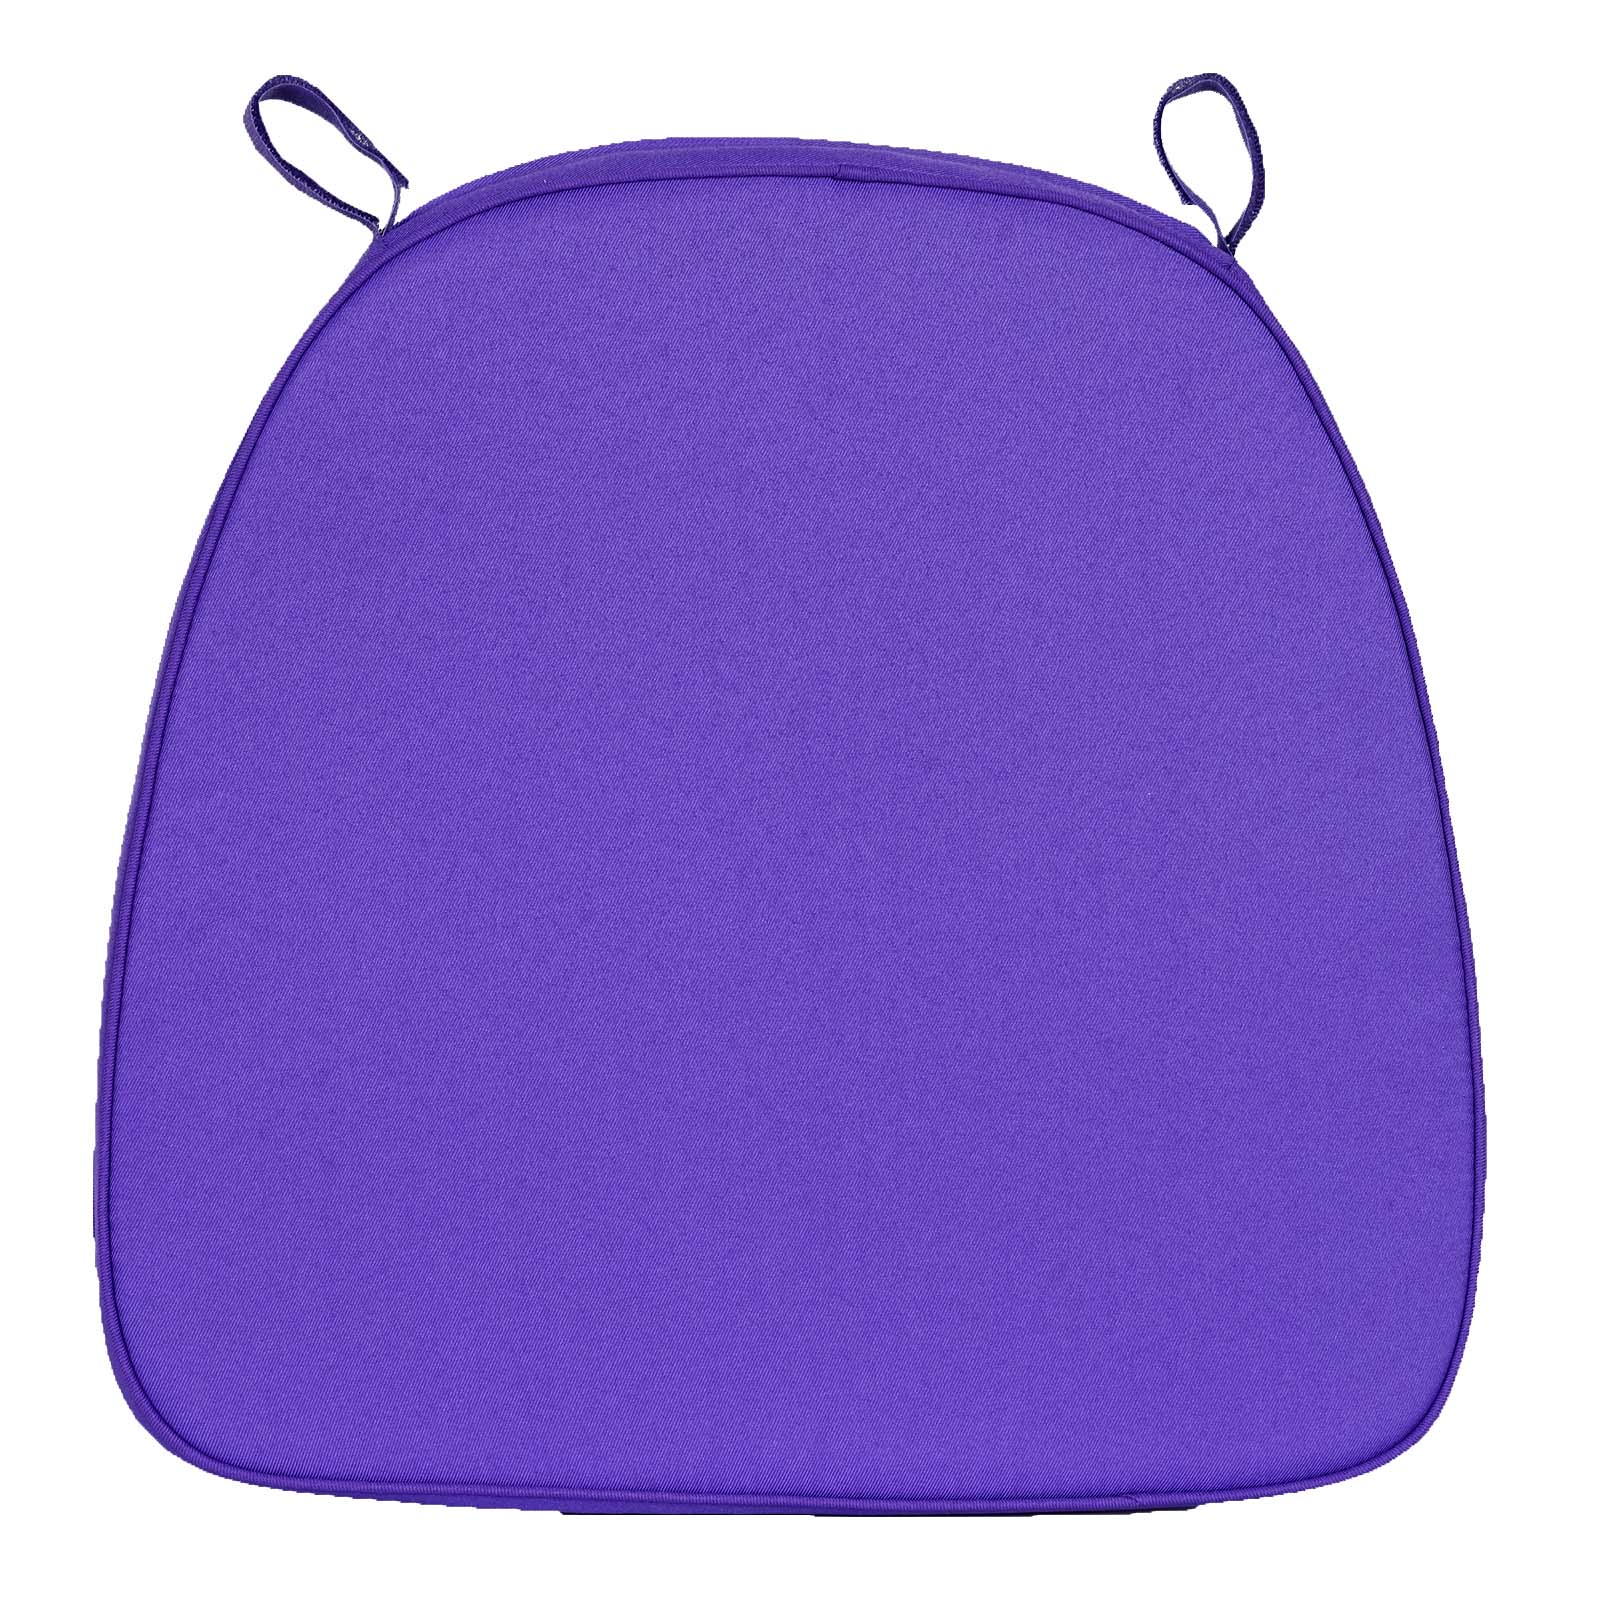 wholesale chair cushions ergonomic drafting chairs padded with zipper wedding reception party